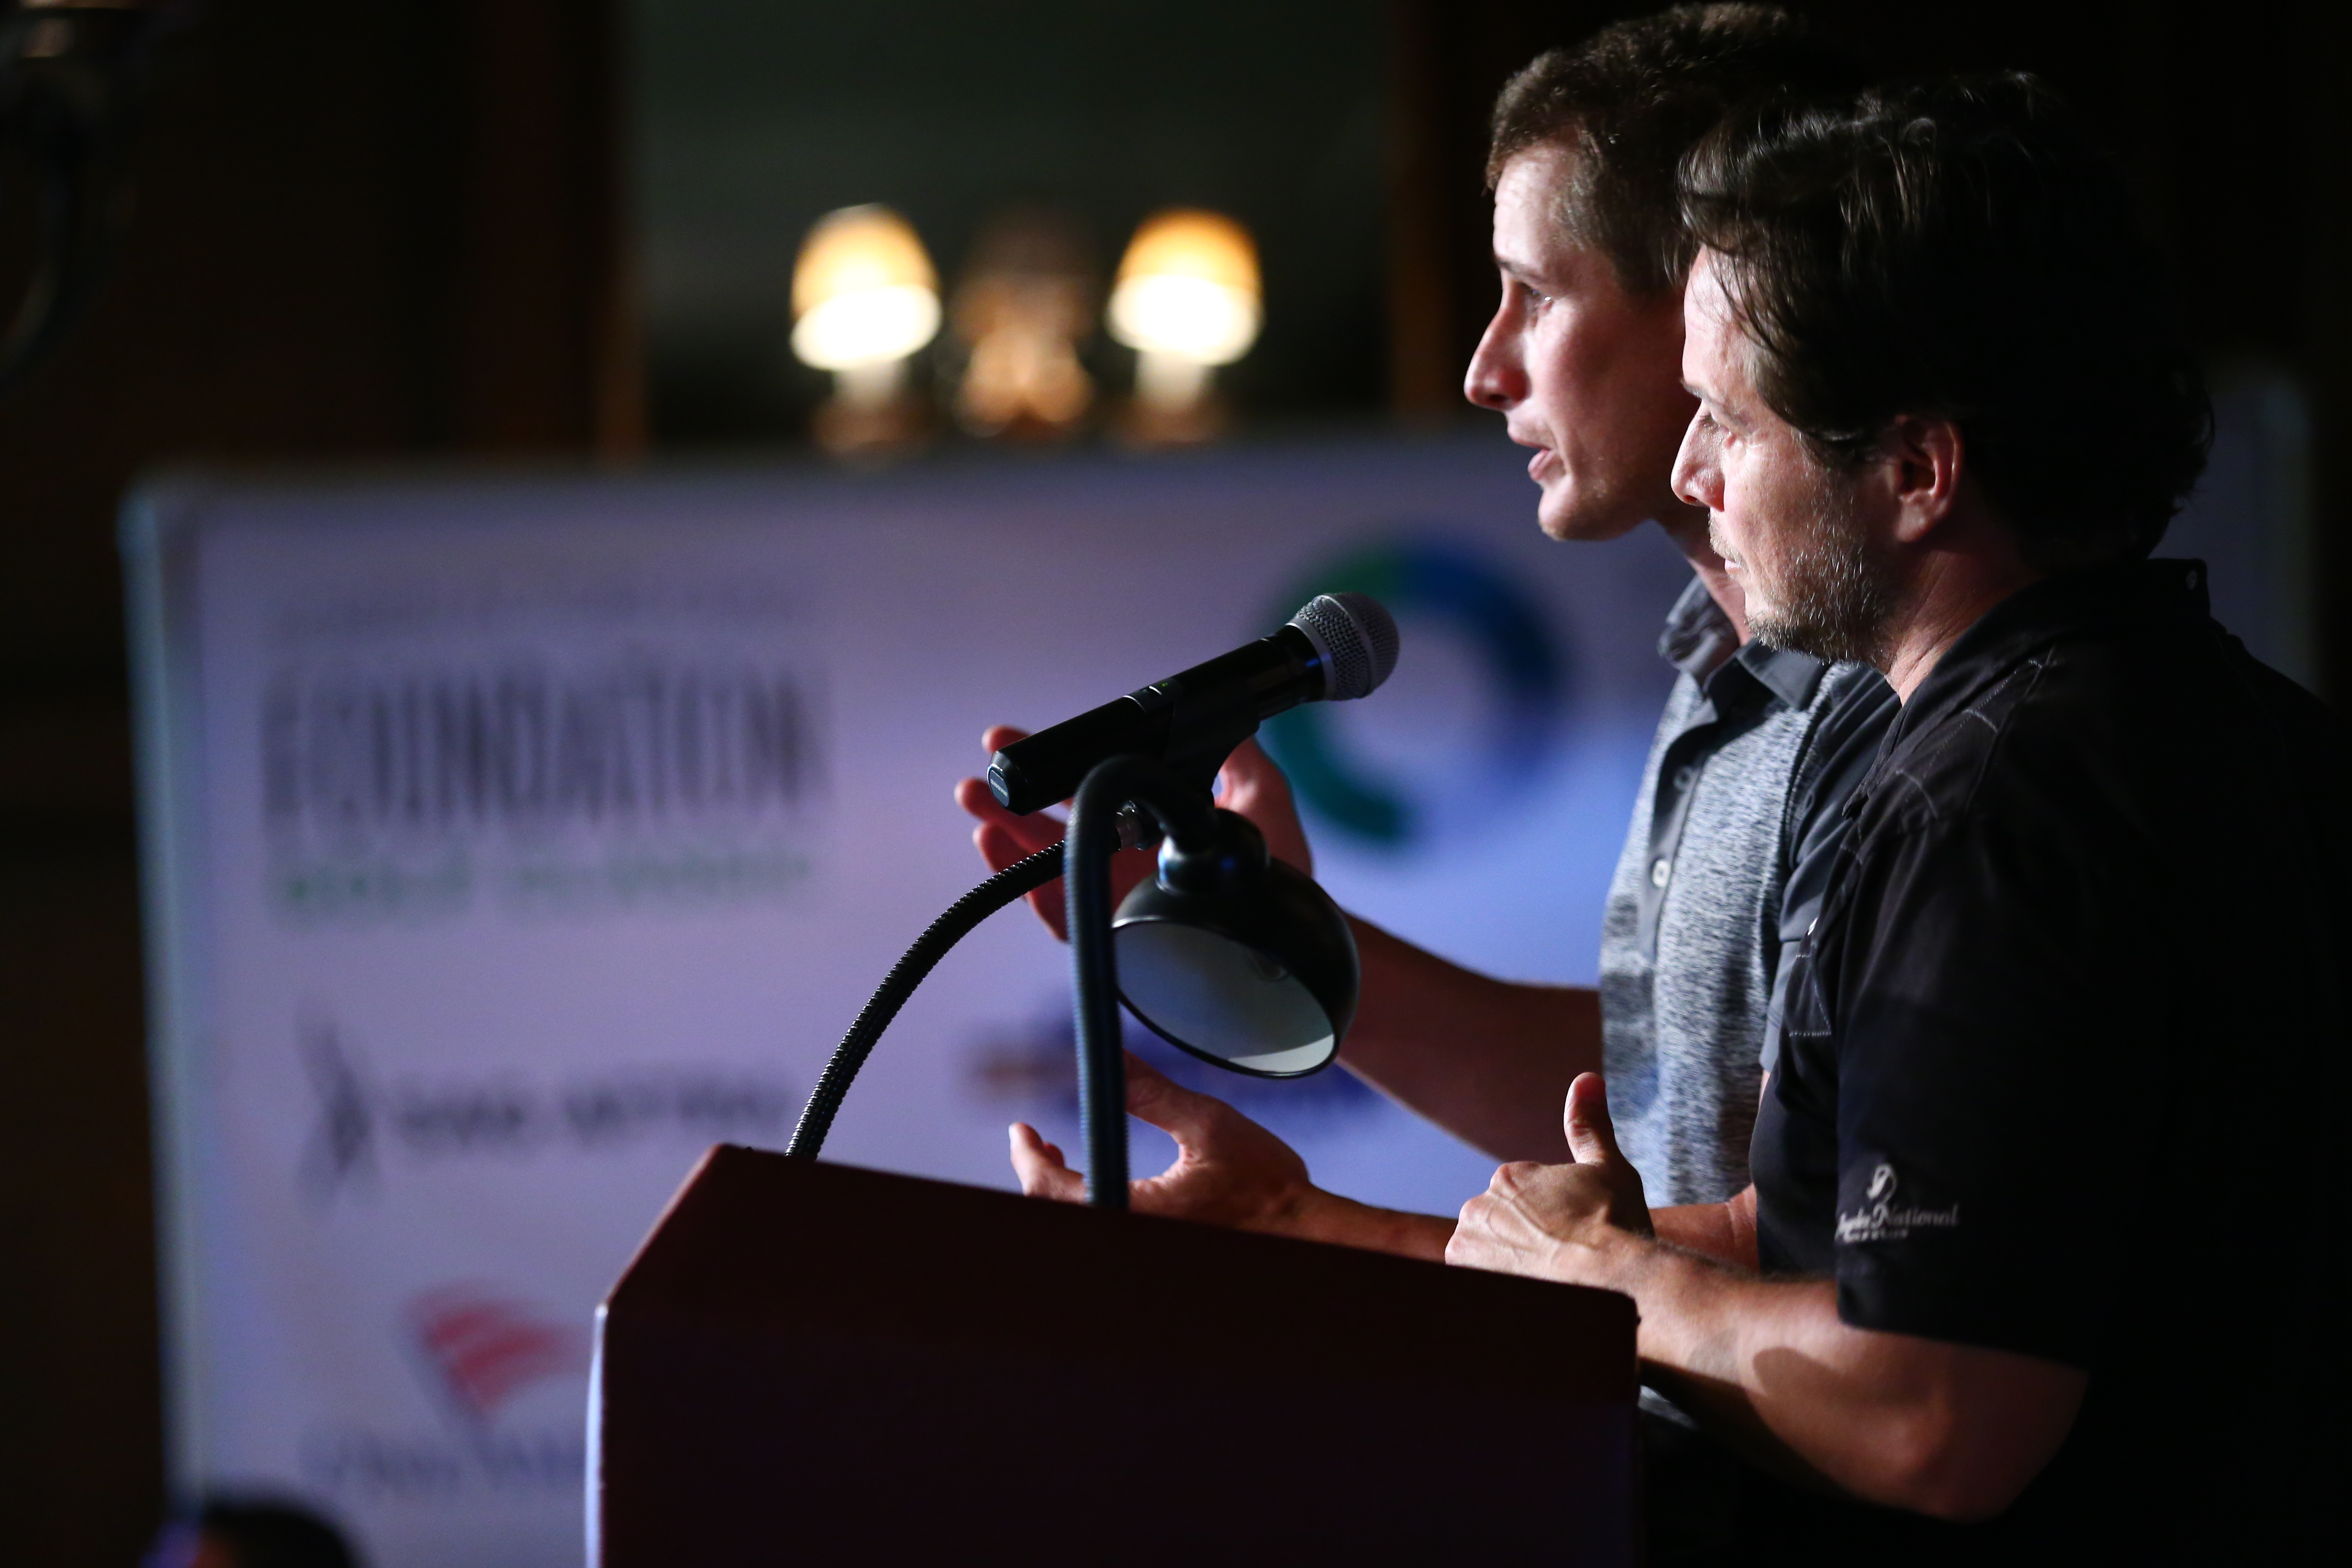 Hosts Brendan Fehr and Scott Wolf speak at the Screen Actors Guild Foundation's 6th Annual Los Angeles Golf Classic on June 8, 2015 in Burbank, California.  (Photo by Mark Davis/Getty Images for The Screen Actors Guild Foundation)